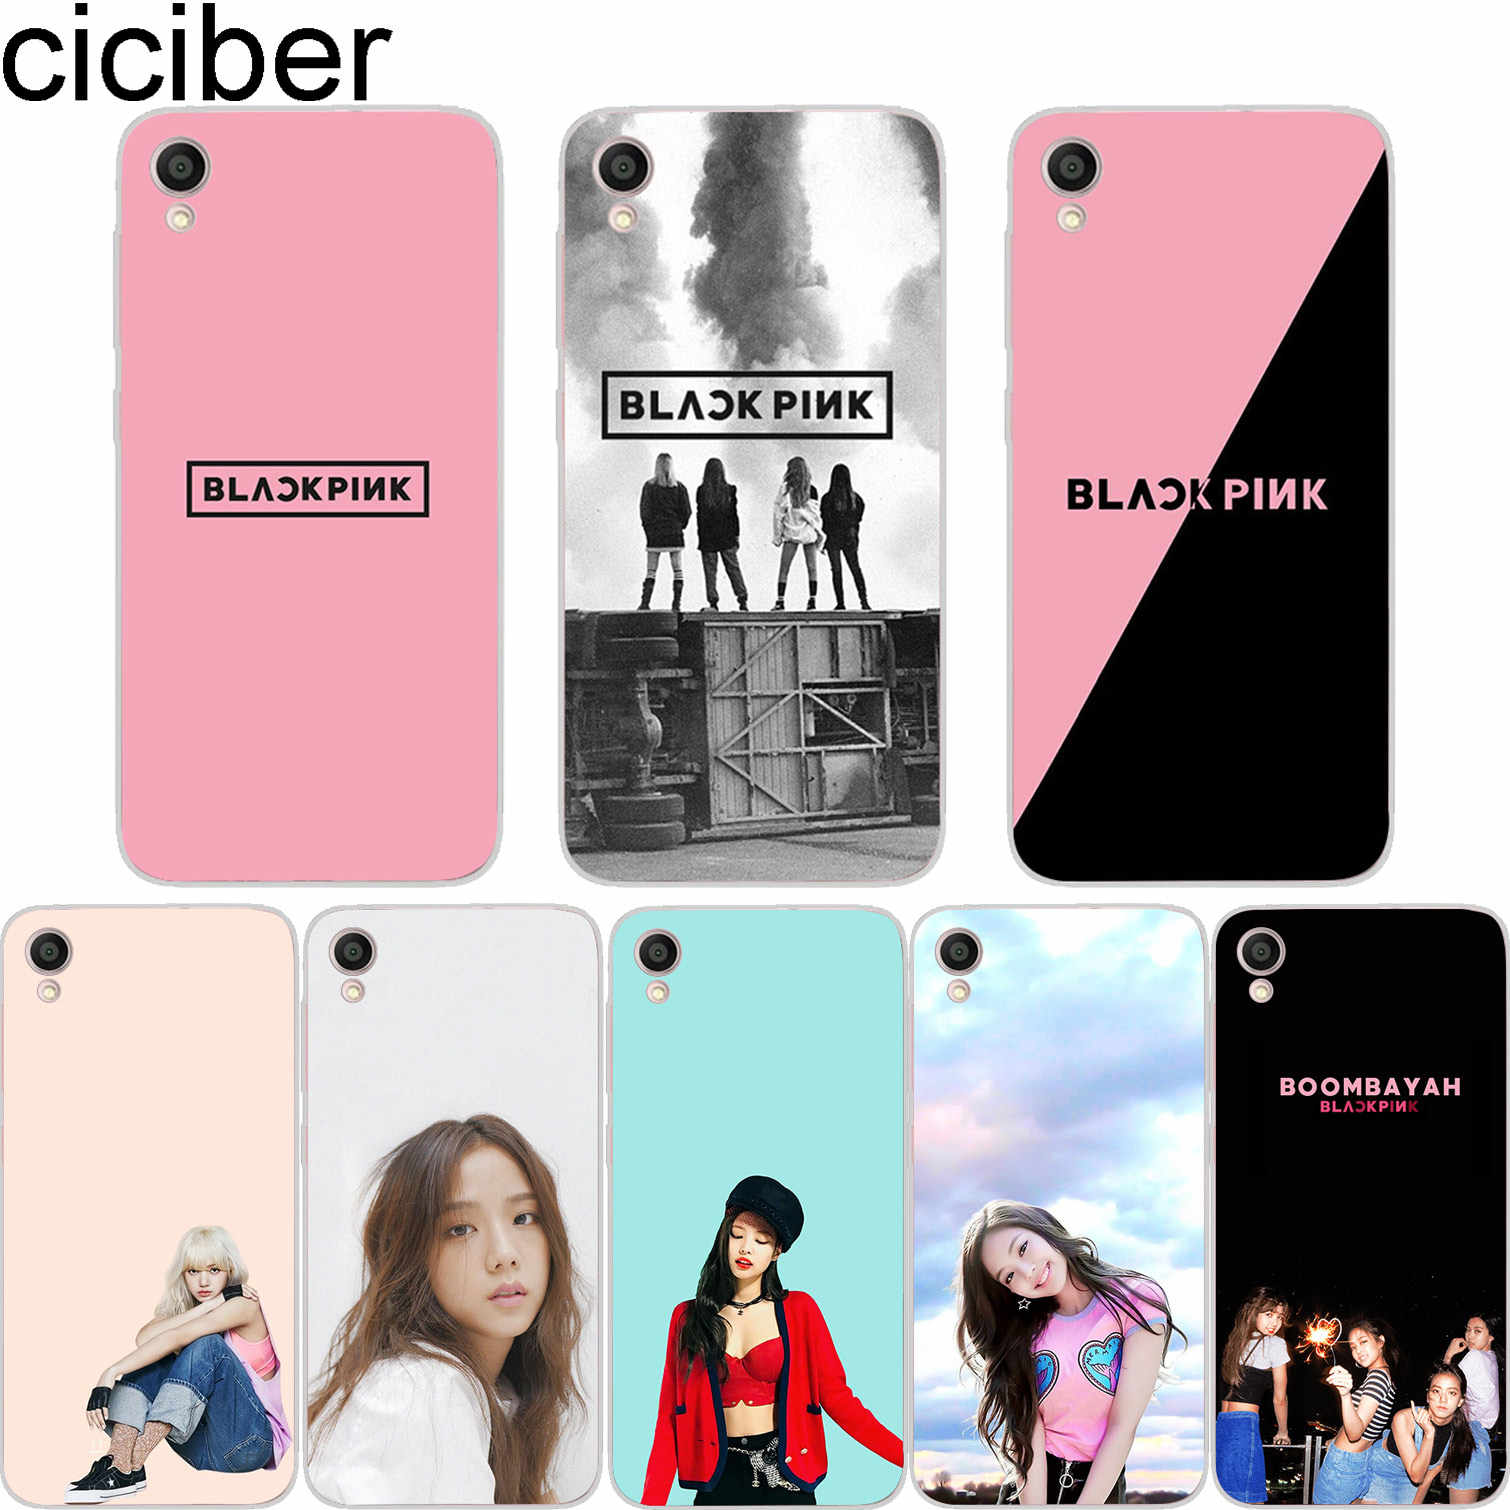 ciciber Black Pink For ASUS ZenFone 5 4 3 3S Max Pro Plus Laser Deluxe Selfie Z Q Lite Soft Cover Clear TPU Phones Cases Coque